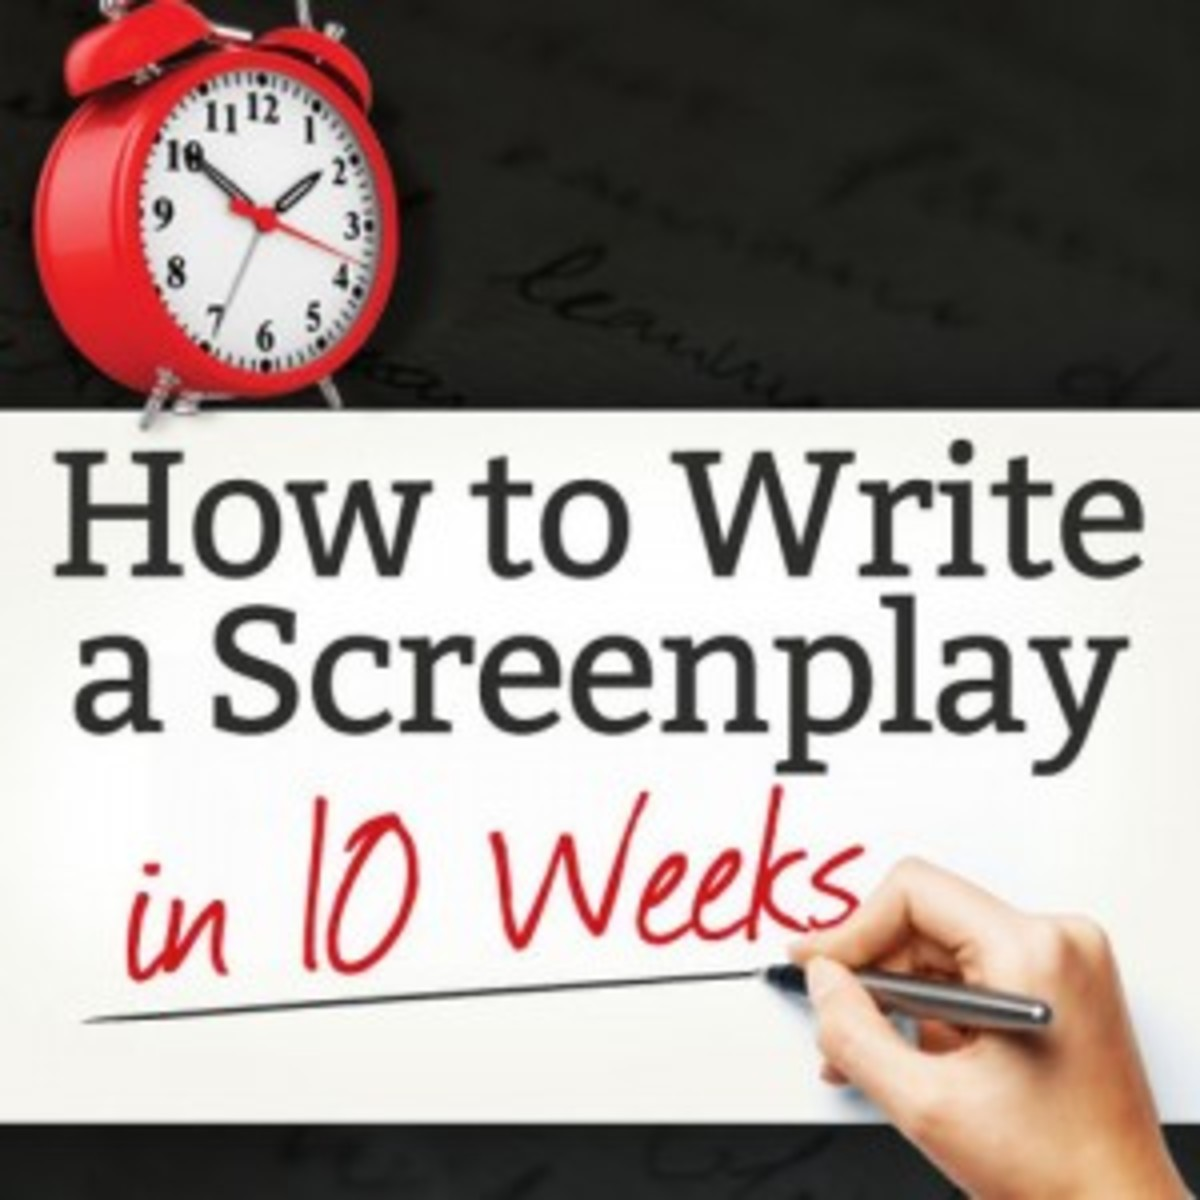 writescreenplay10weeks-500_medium